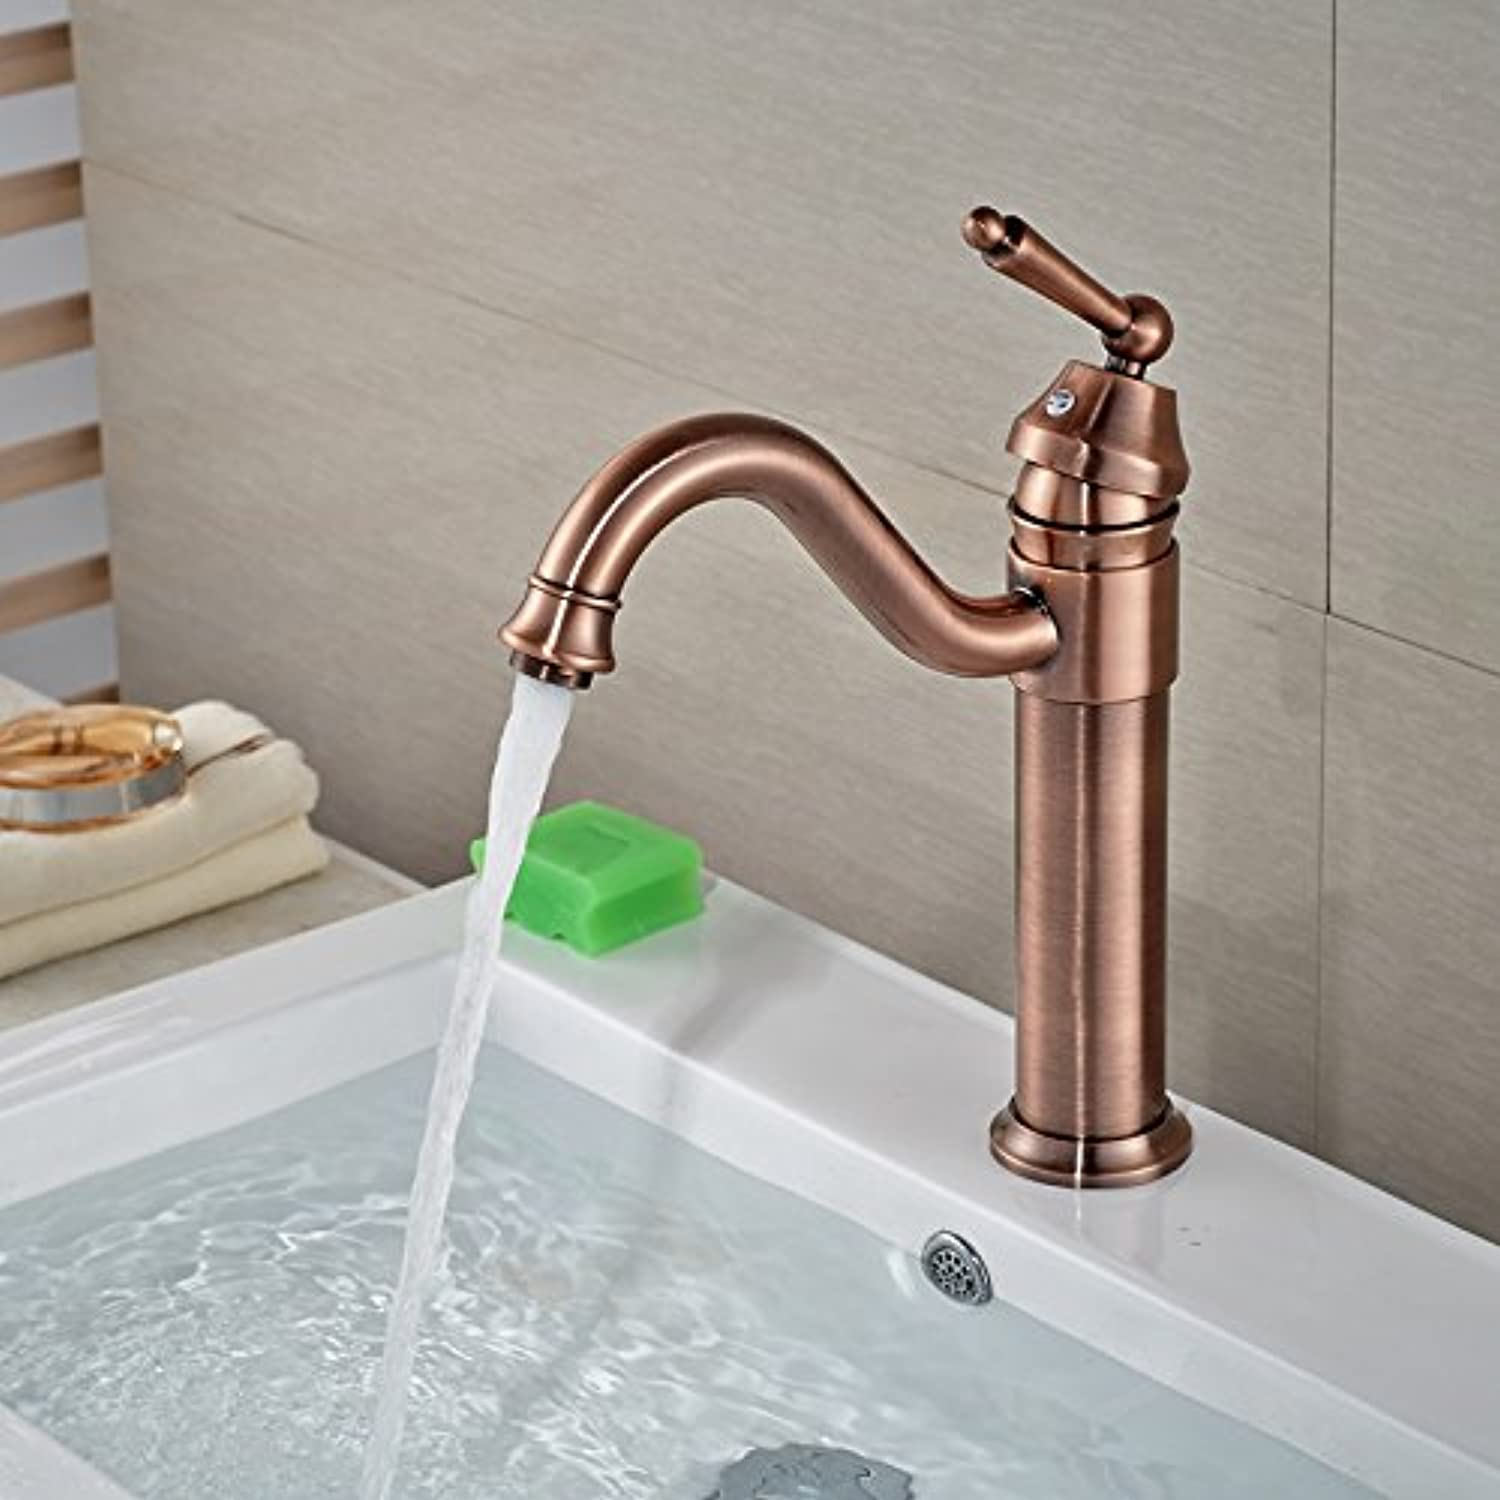 U-Enjoy Deck Mounted redating Top Quality Neck Bathroom Kitchen Sink Faucet Single Handle Brass Brushed Bathroom Mixers (Antique Bronze)